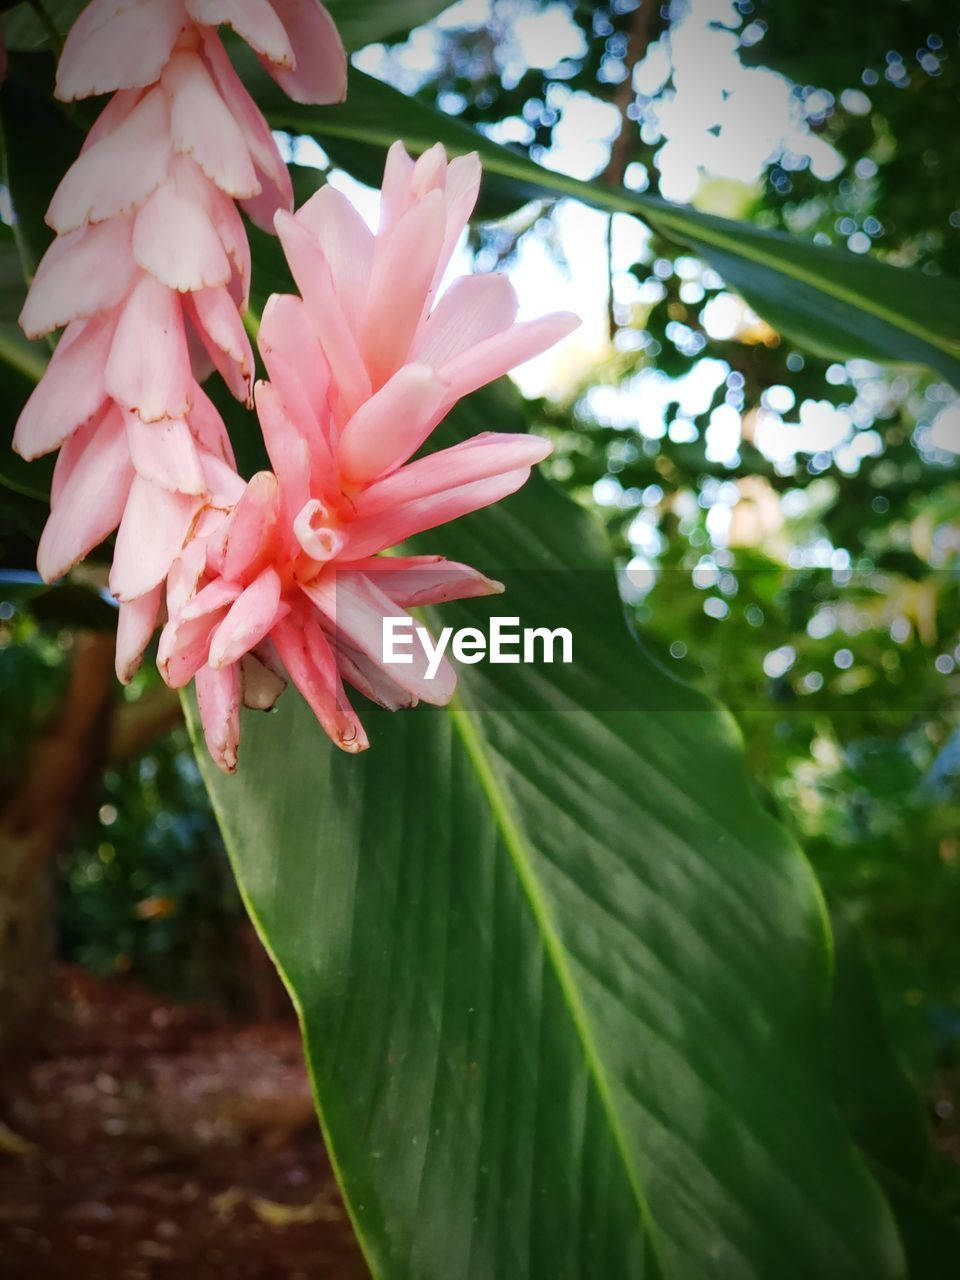 plant, flowering plant, growth, flower, beauty in nature, freshness, vulnerability, fragility, close-up, petal, plant part, leaf, nature, flower head, inflorescence, day, pink color, no people, green color, focus on foreground, outdoors